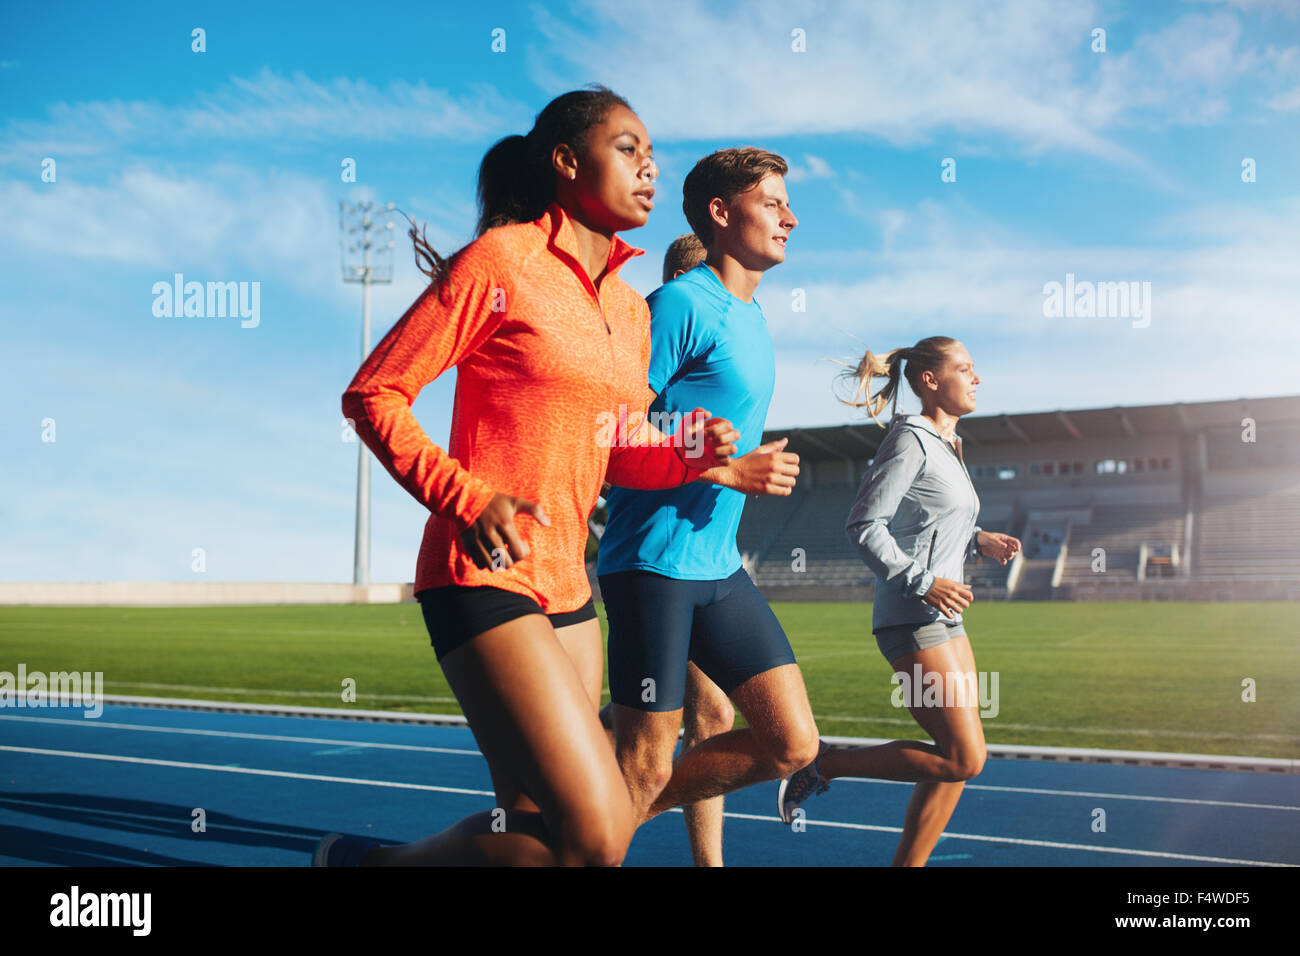 Group of runners running on race track in stadium. Young male and female athletes practicing together on racetrack. - Stock Image